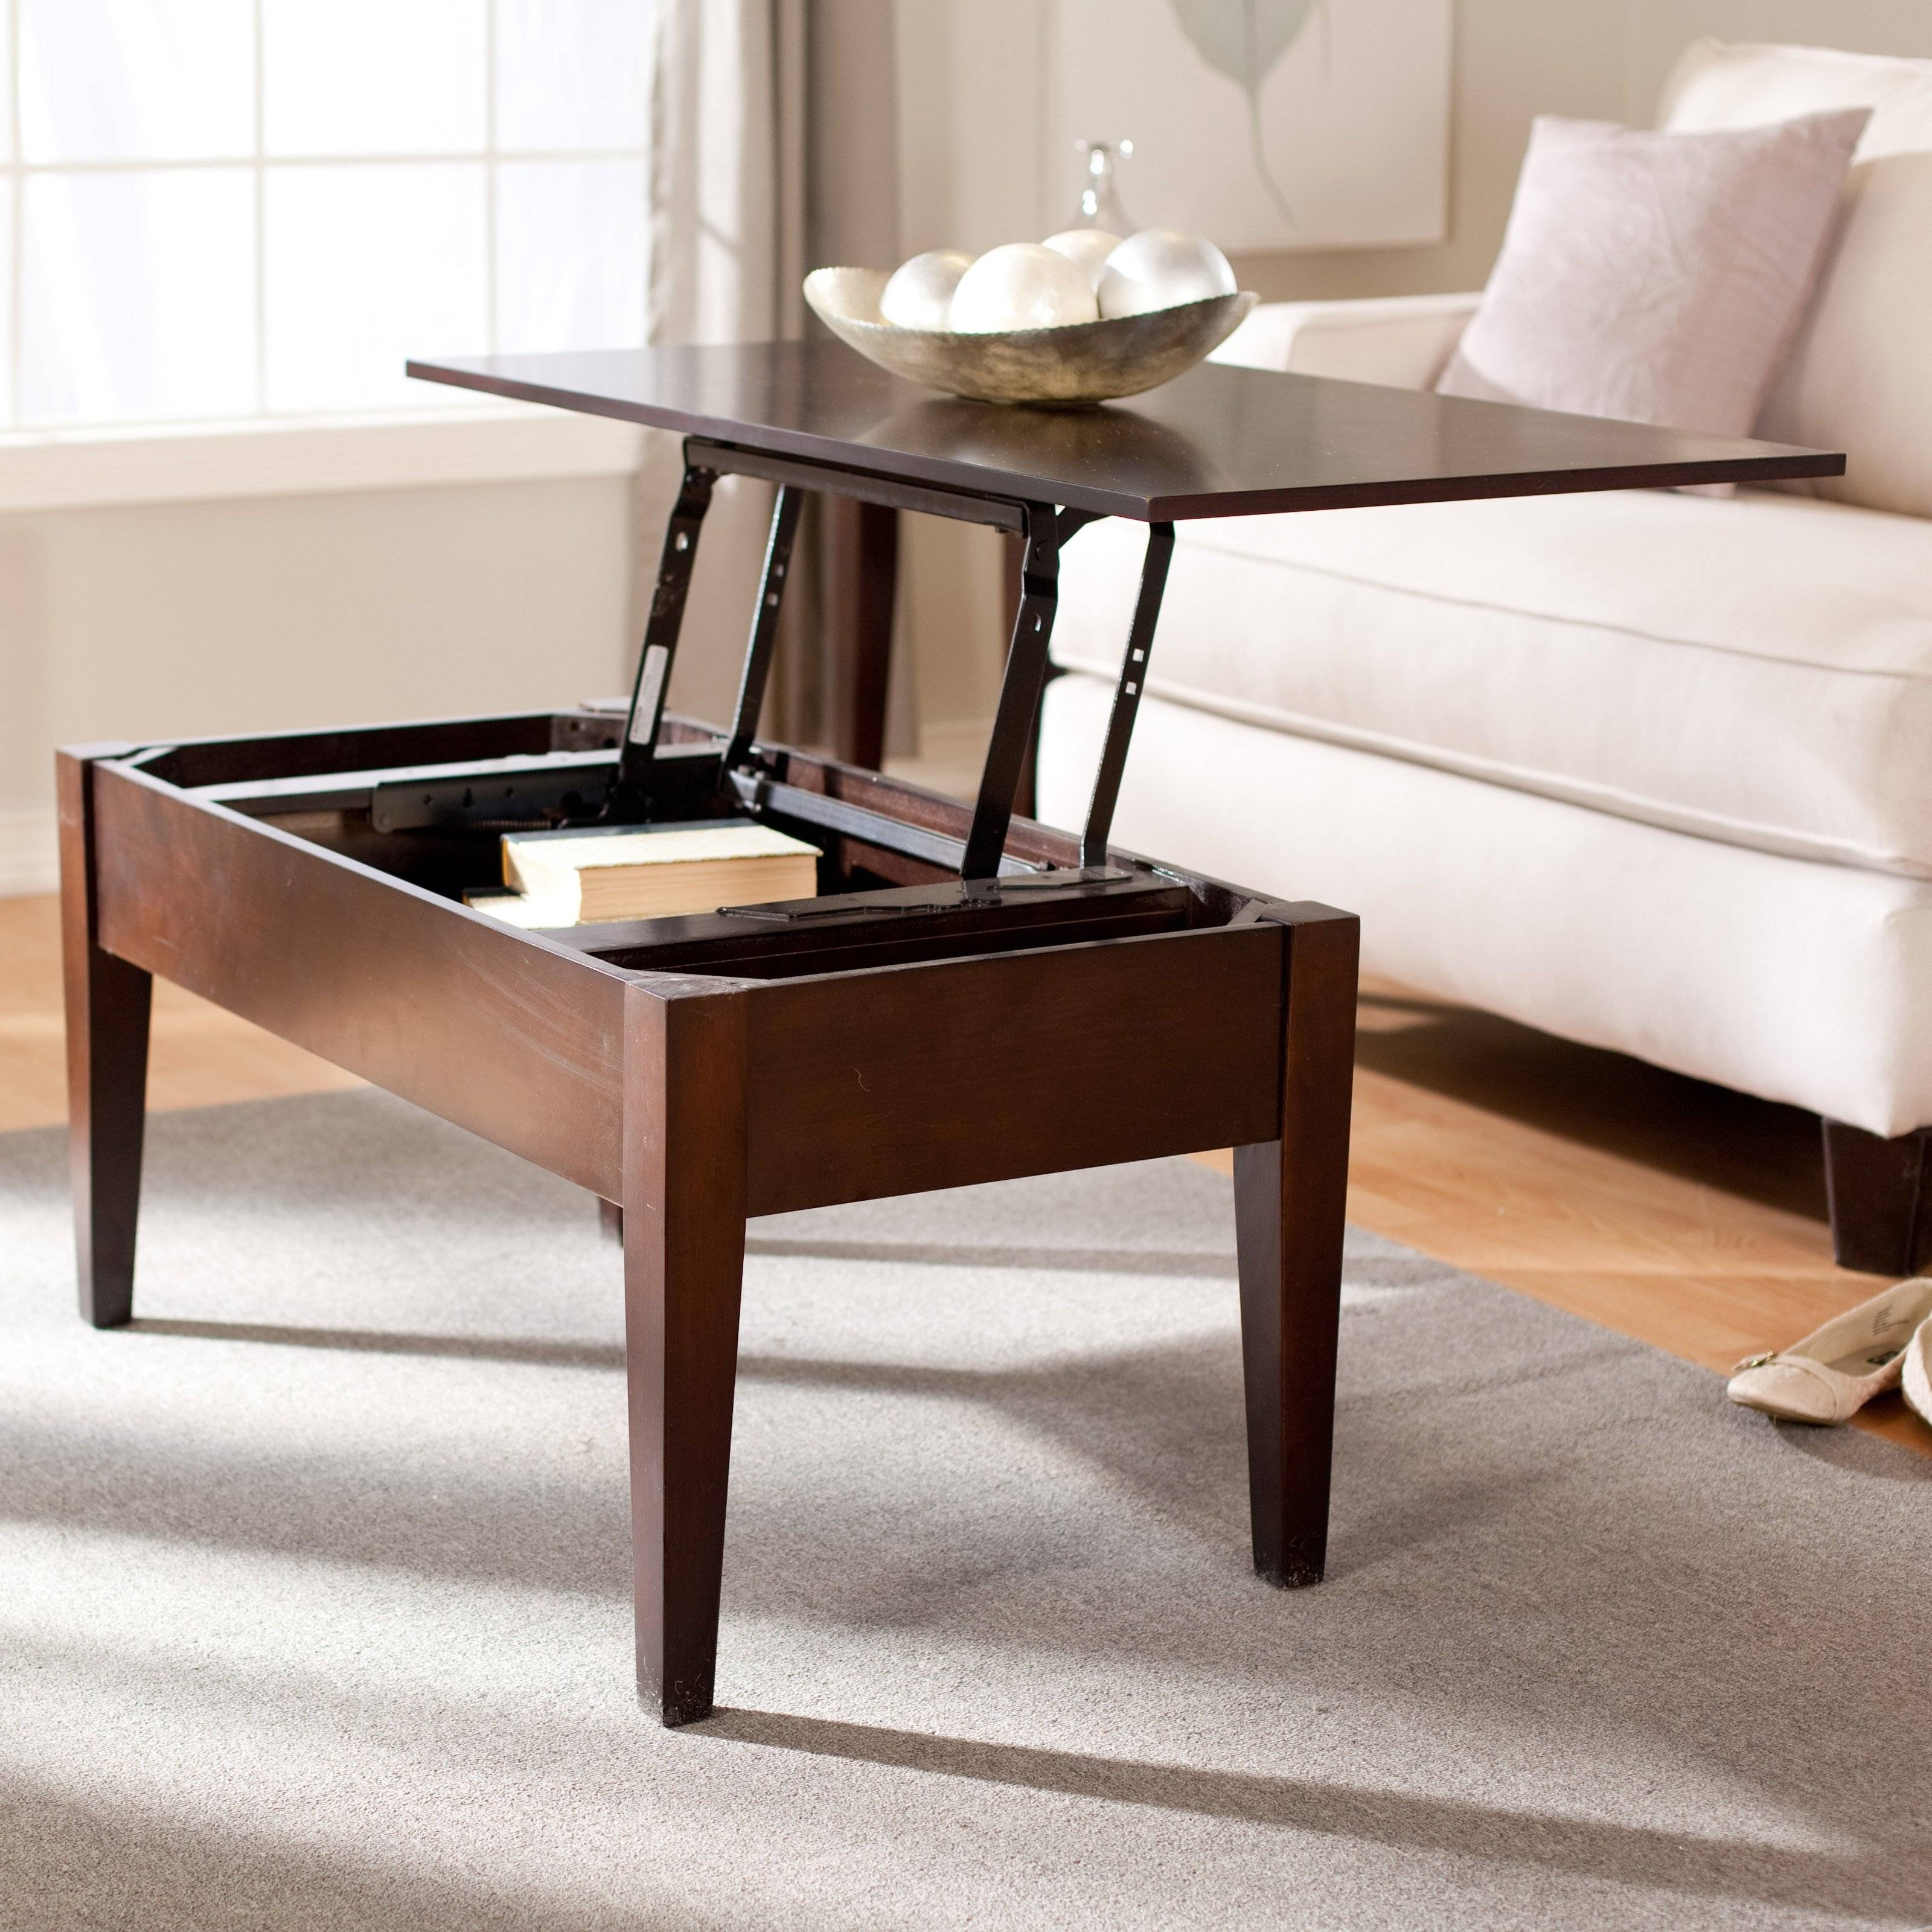 Turner Lift Top Coffee Table - Black | Hayneedle with Lift Up Top Coffee Tables (Image 28 of 30)